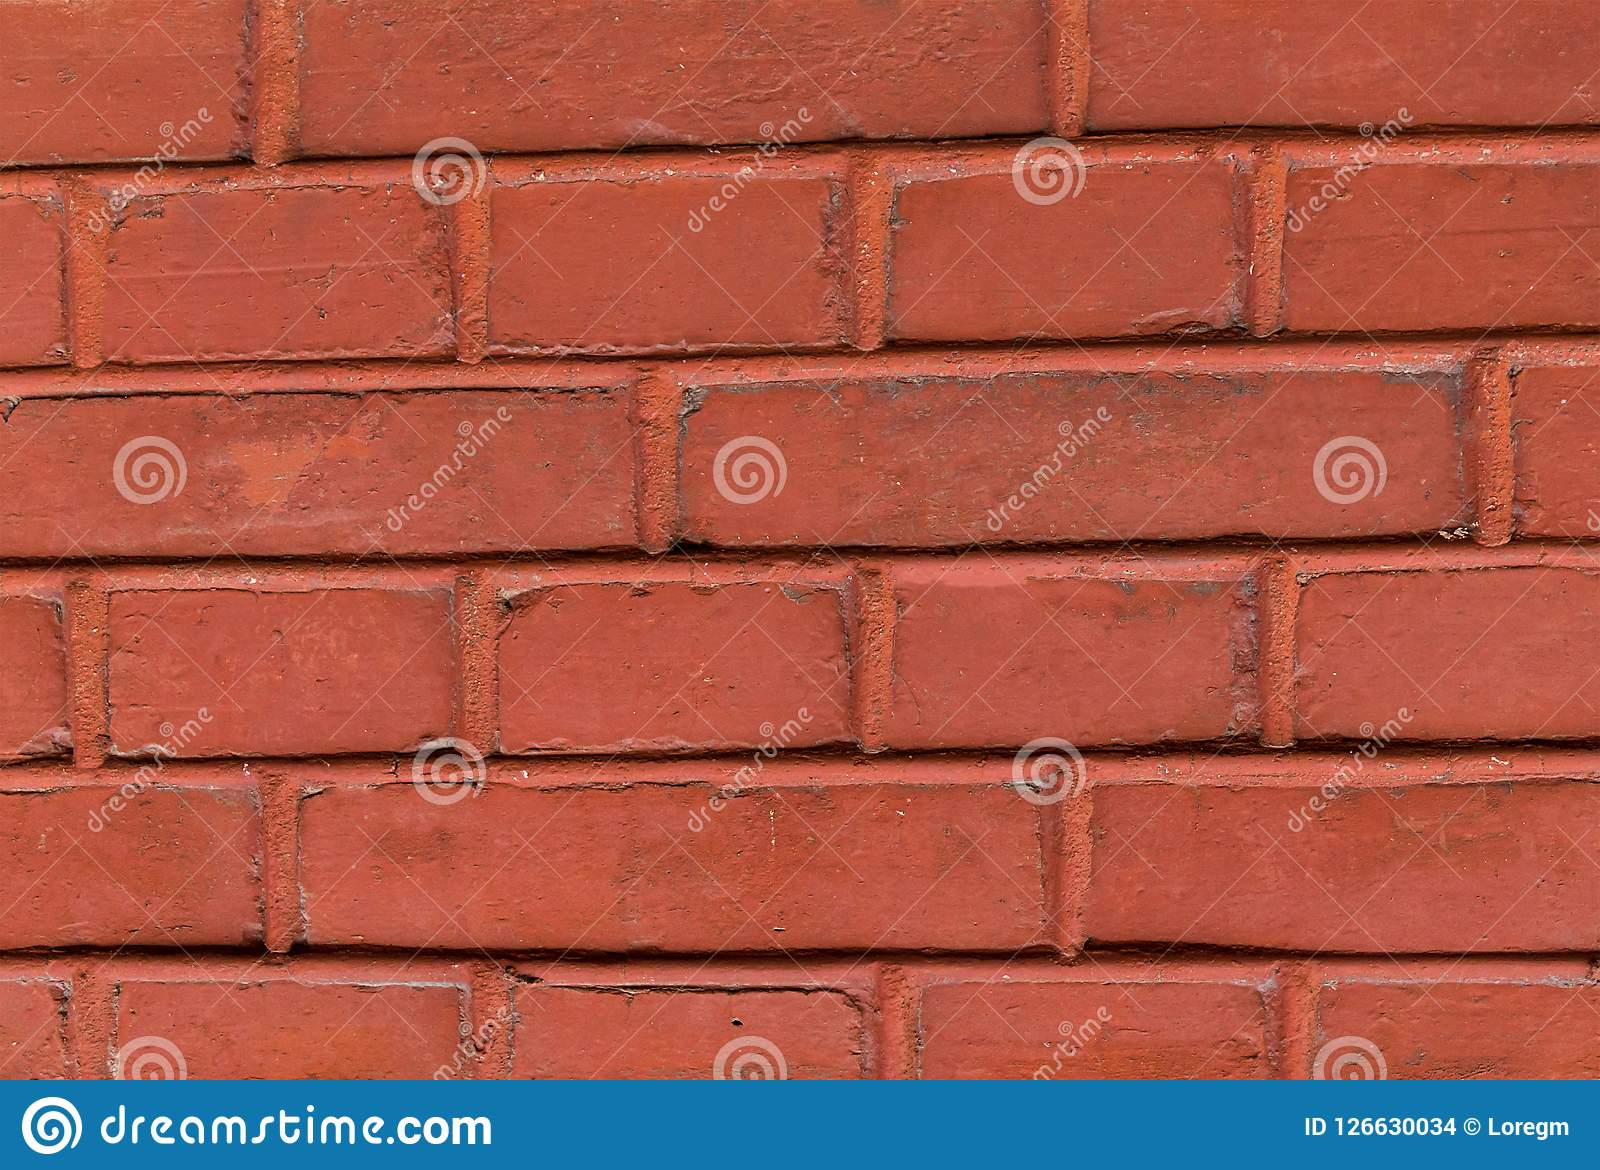 Pattern Brick Wall Rectangular Stone Painted Red Terracotta Color